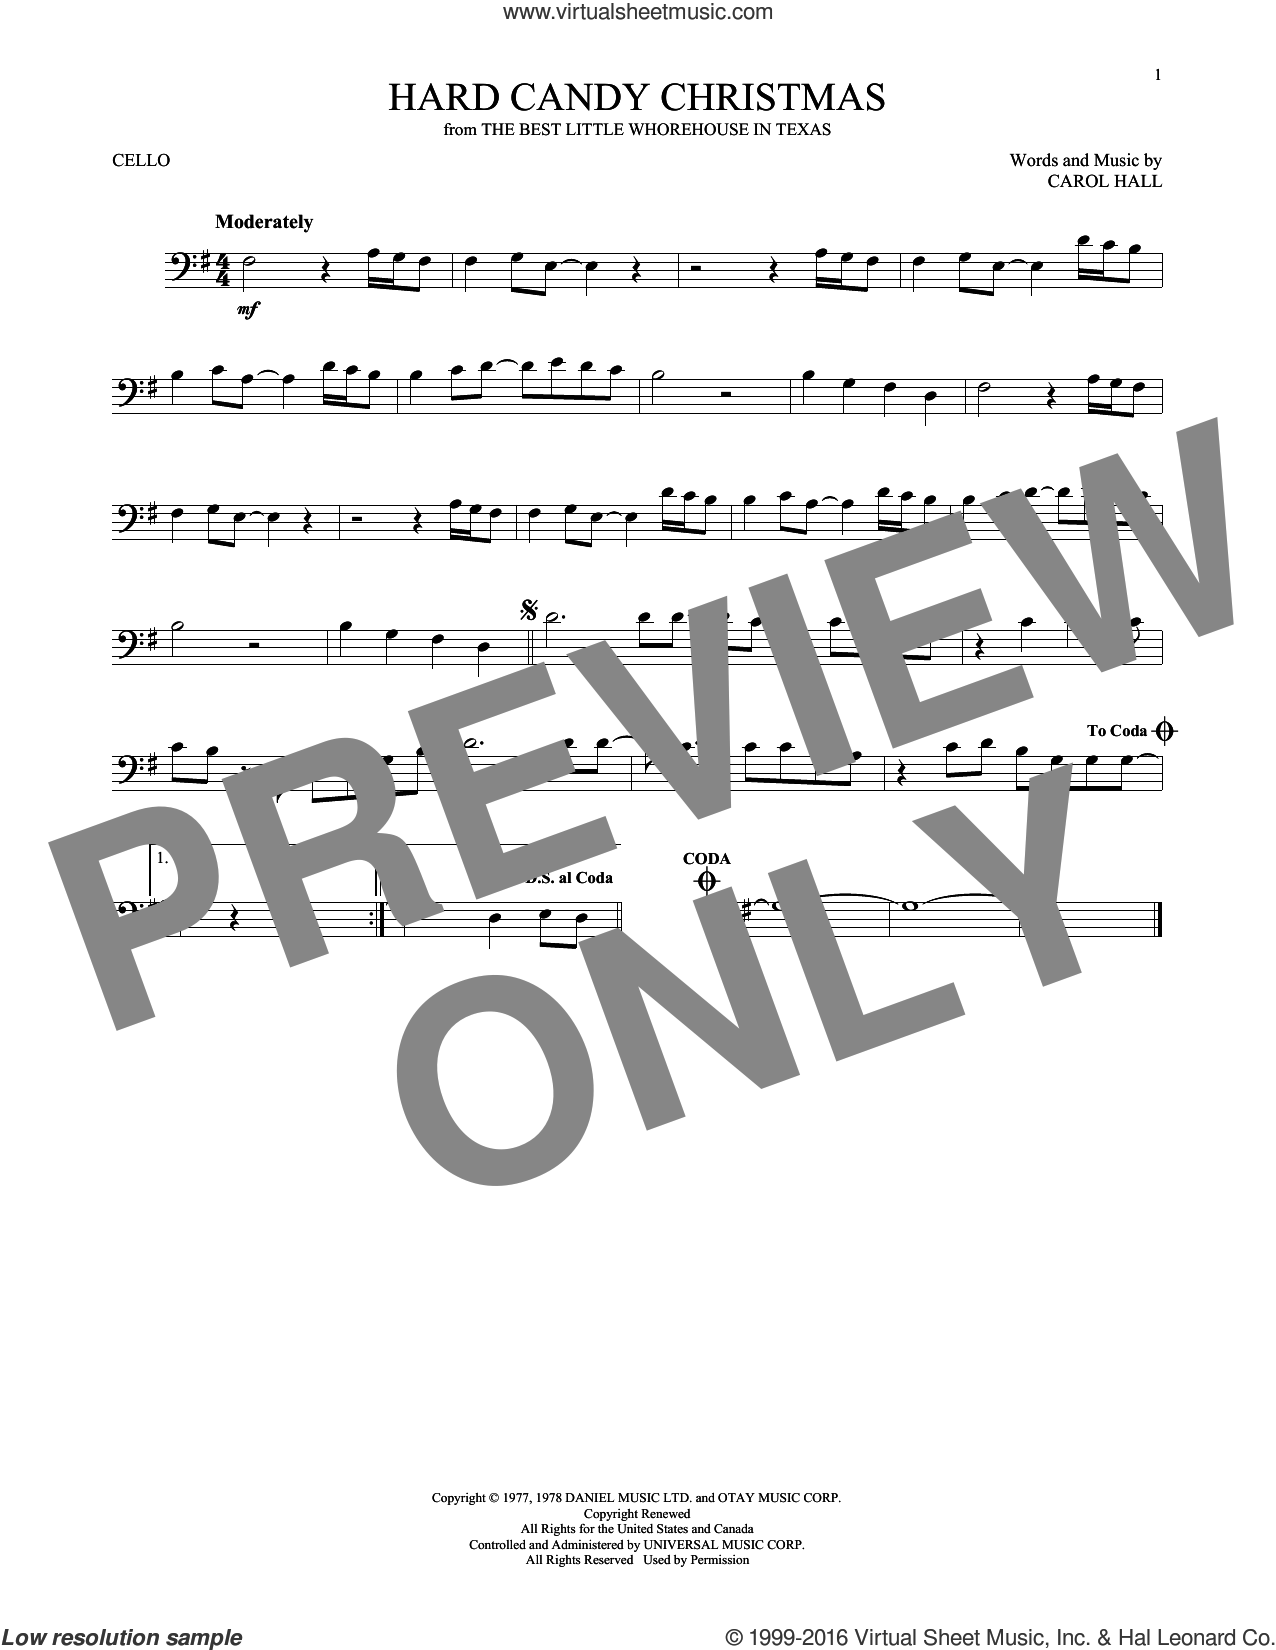 Hard Candy Christmas sheet music for cello solo by Dolly Parton and Carol Hall, intermediate skill level